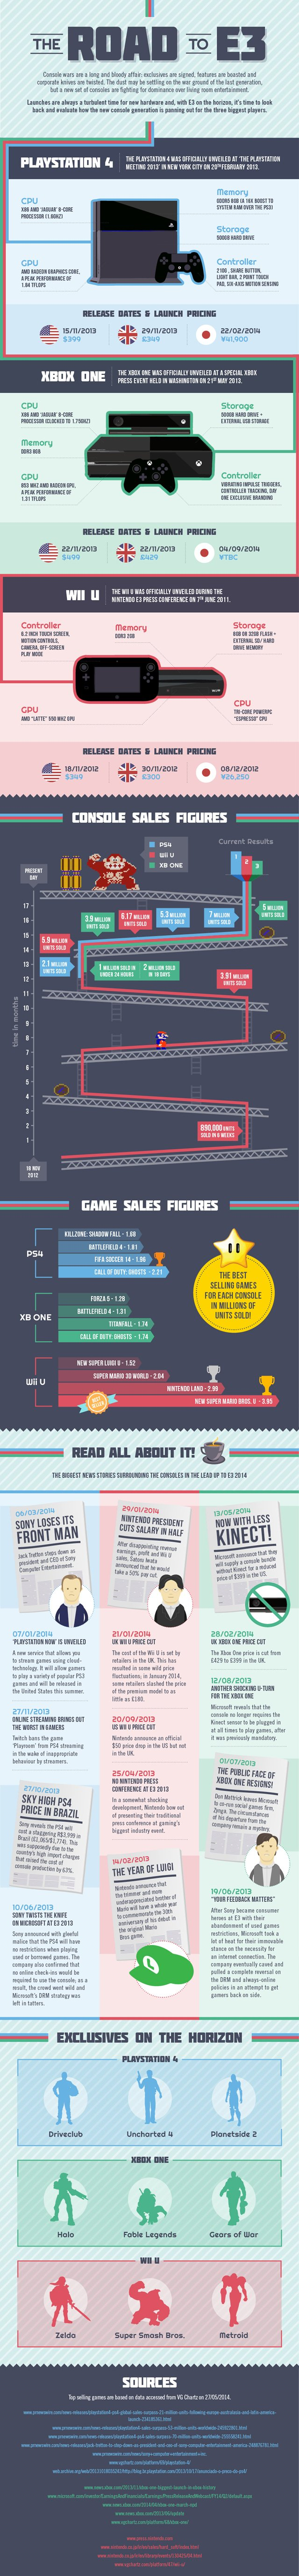 Road to E3 infographic (full)